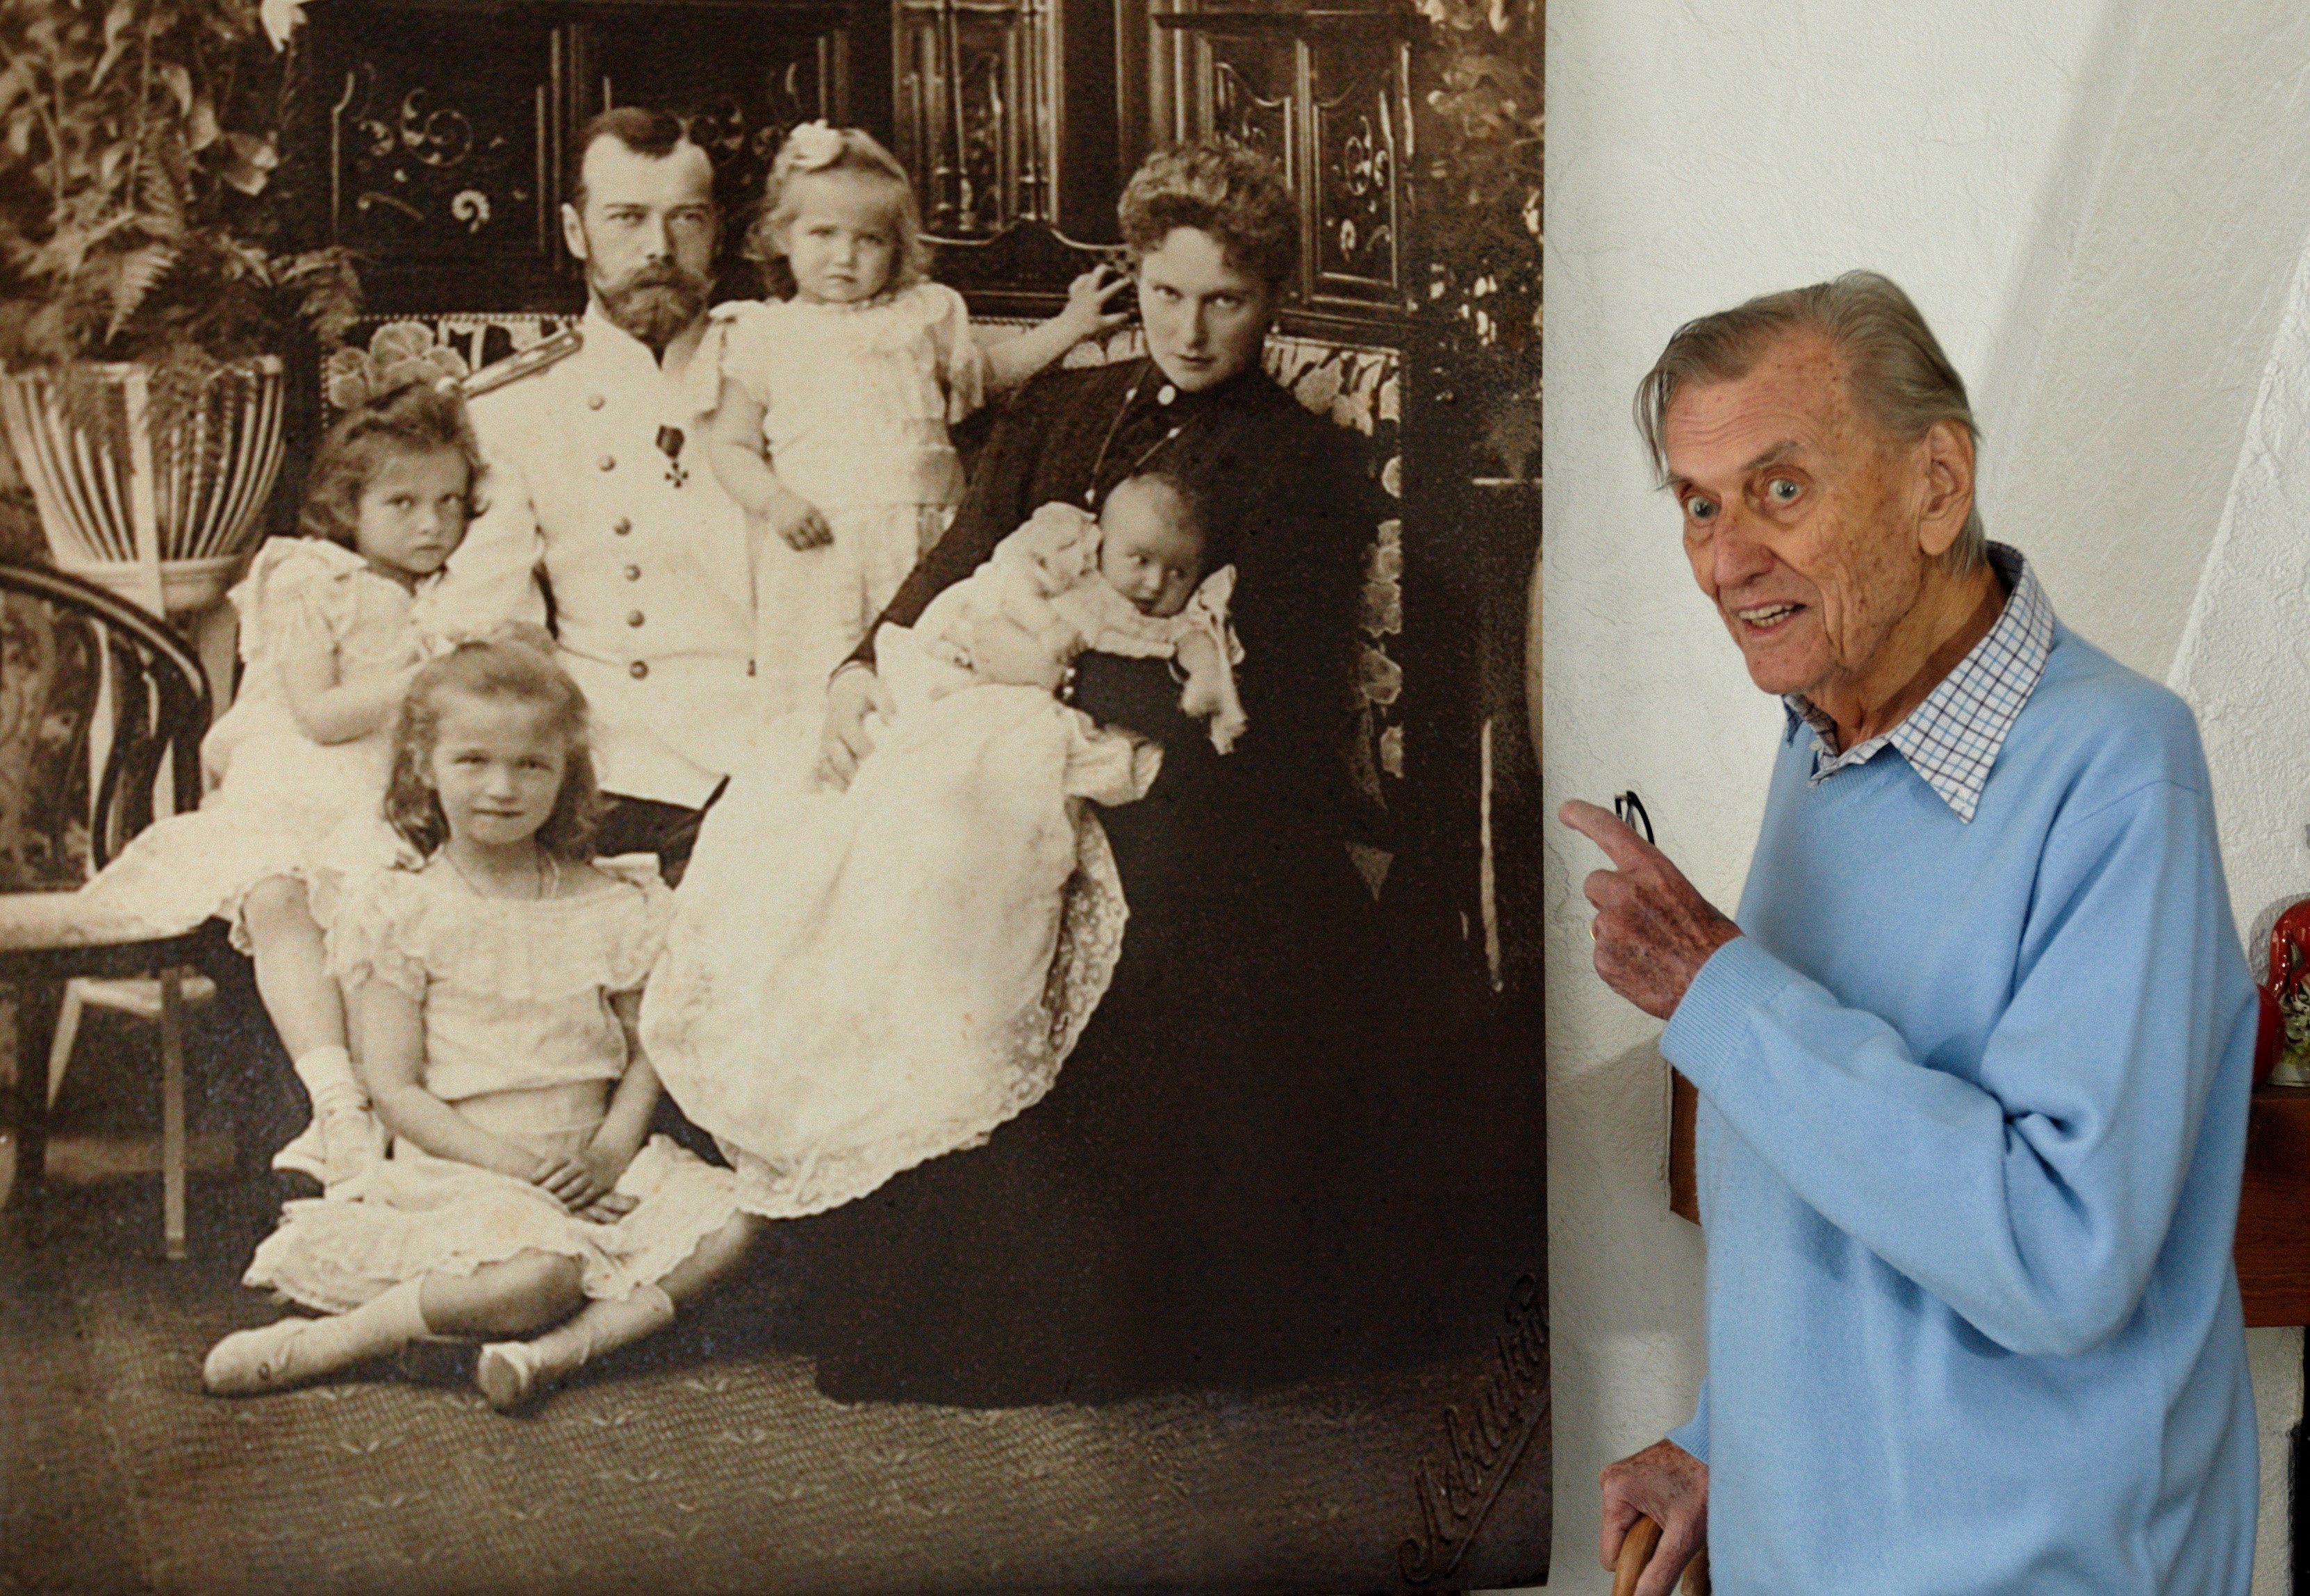 Prince Nicolas Romanov of Russia gestures in front of a enlarged photograph showing his ancestor Tsar Nicholas II, his wife Alexandra Fedorovna and their four daughters during an auction preview in his apartment in Rougemont, 150 km (93.2 miles) east of Geneva, November 29, 2012. Some 3000 items, including many photographs and letters of the last Tsar Nicholas II, will be offered for sale during an auction in Geneva December 10 to 13. REUTERS/Denis Balibouse (SWITZERLAND - Tags: SOCIETY ROYALS)